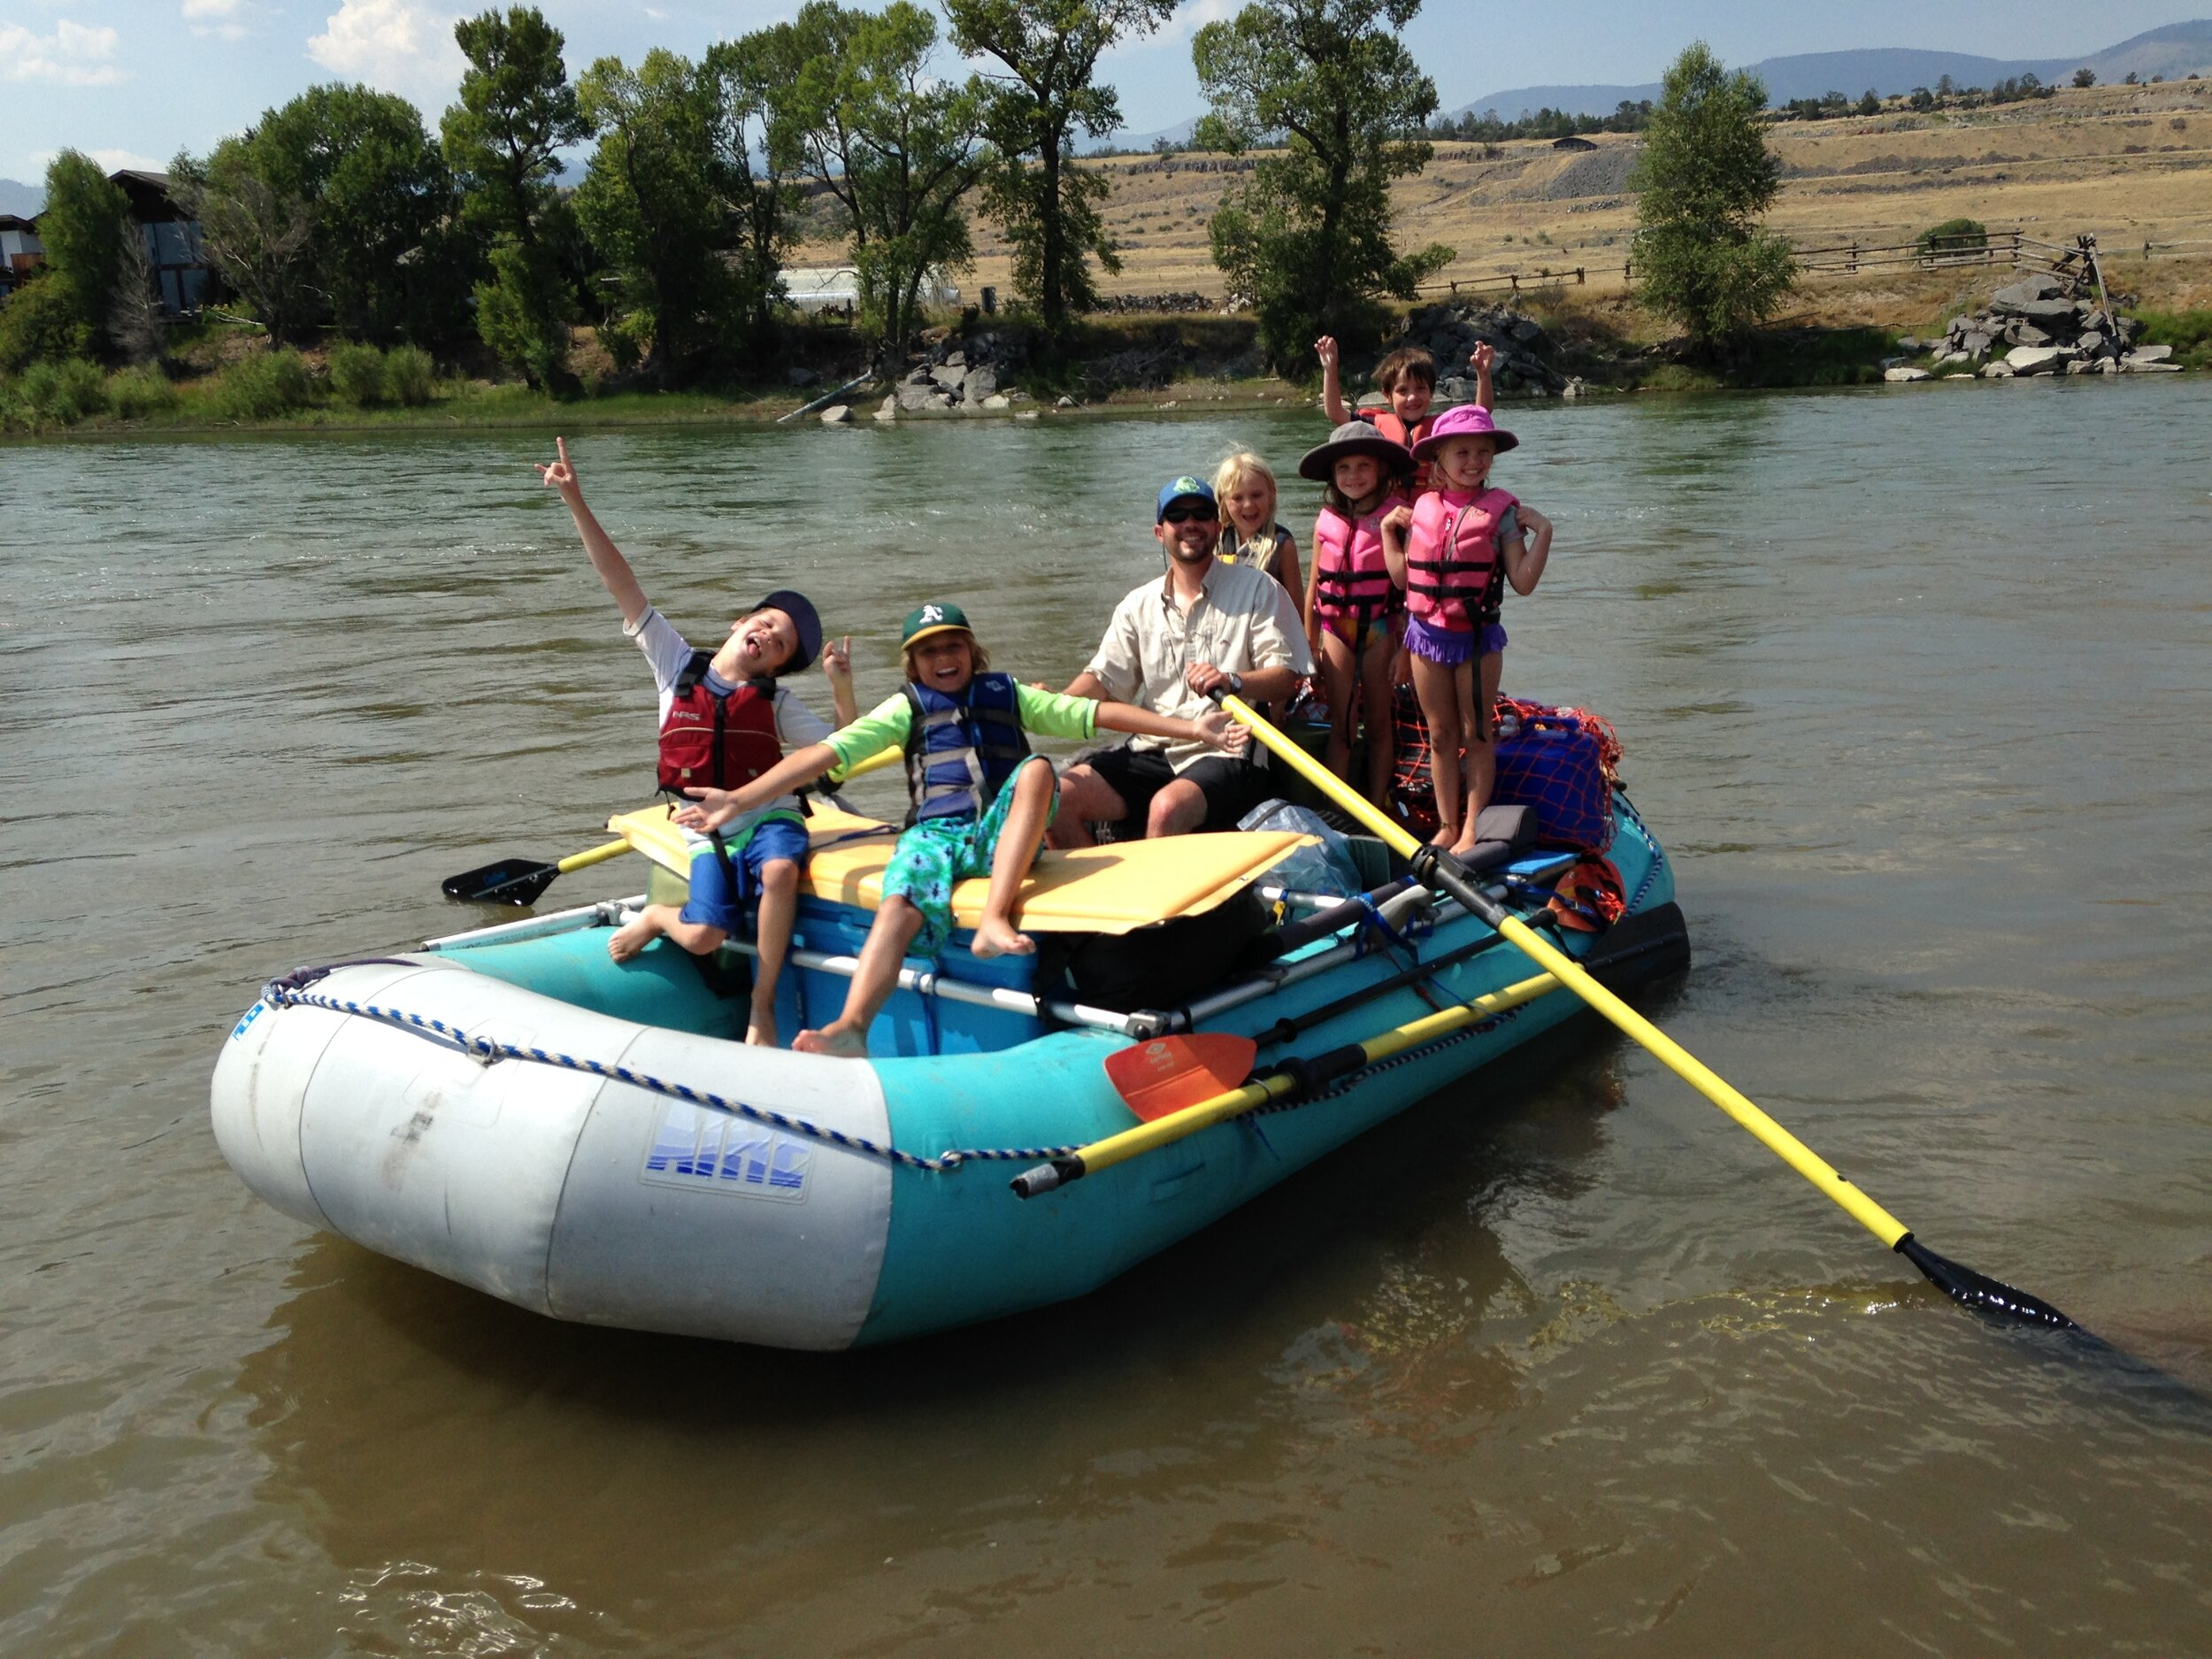 The Greater Yellowstone Coalition's Deputy Director Scott Christensen and his rafting crew on the Yellowstone River. (Photo Scott Christensen.)